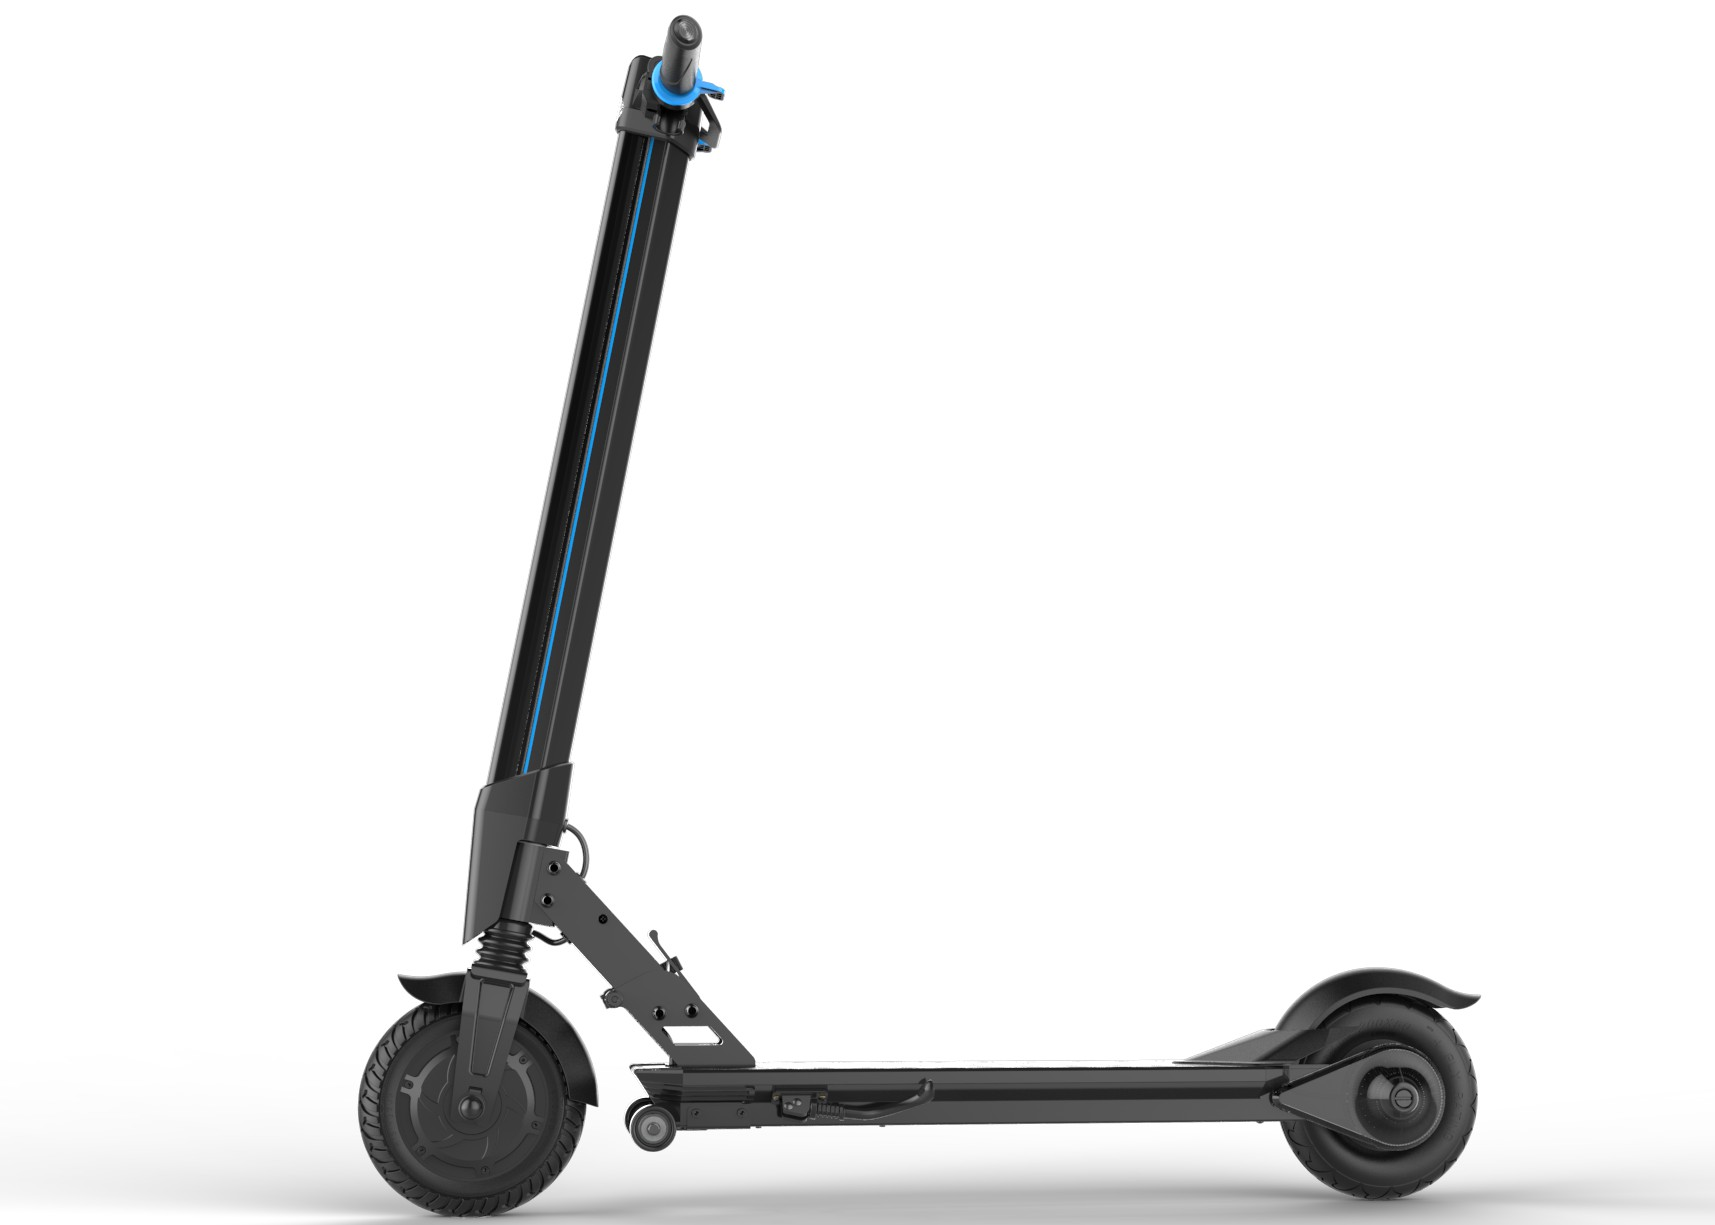 Foldable Electric Kick Scooter Personal Transporter for Adult Commuting